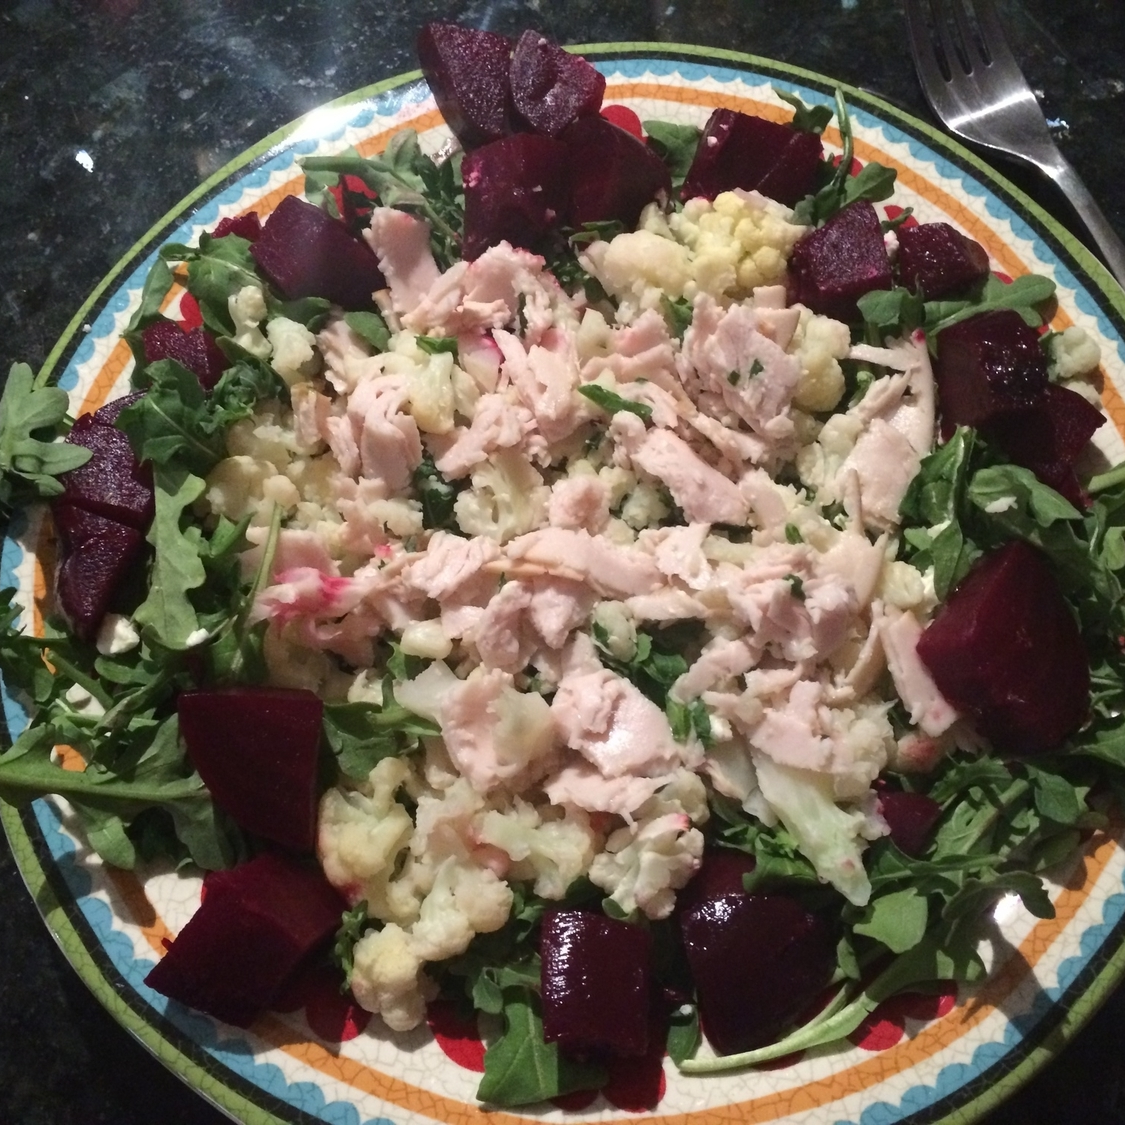 Lunch - arugula with beets, chicken, cauliflower. MCT oil added after picture.